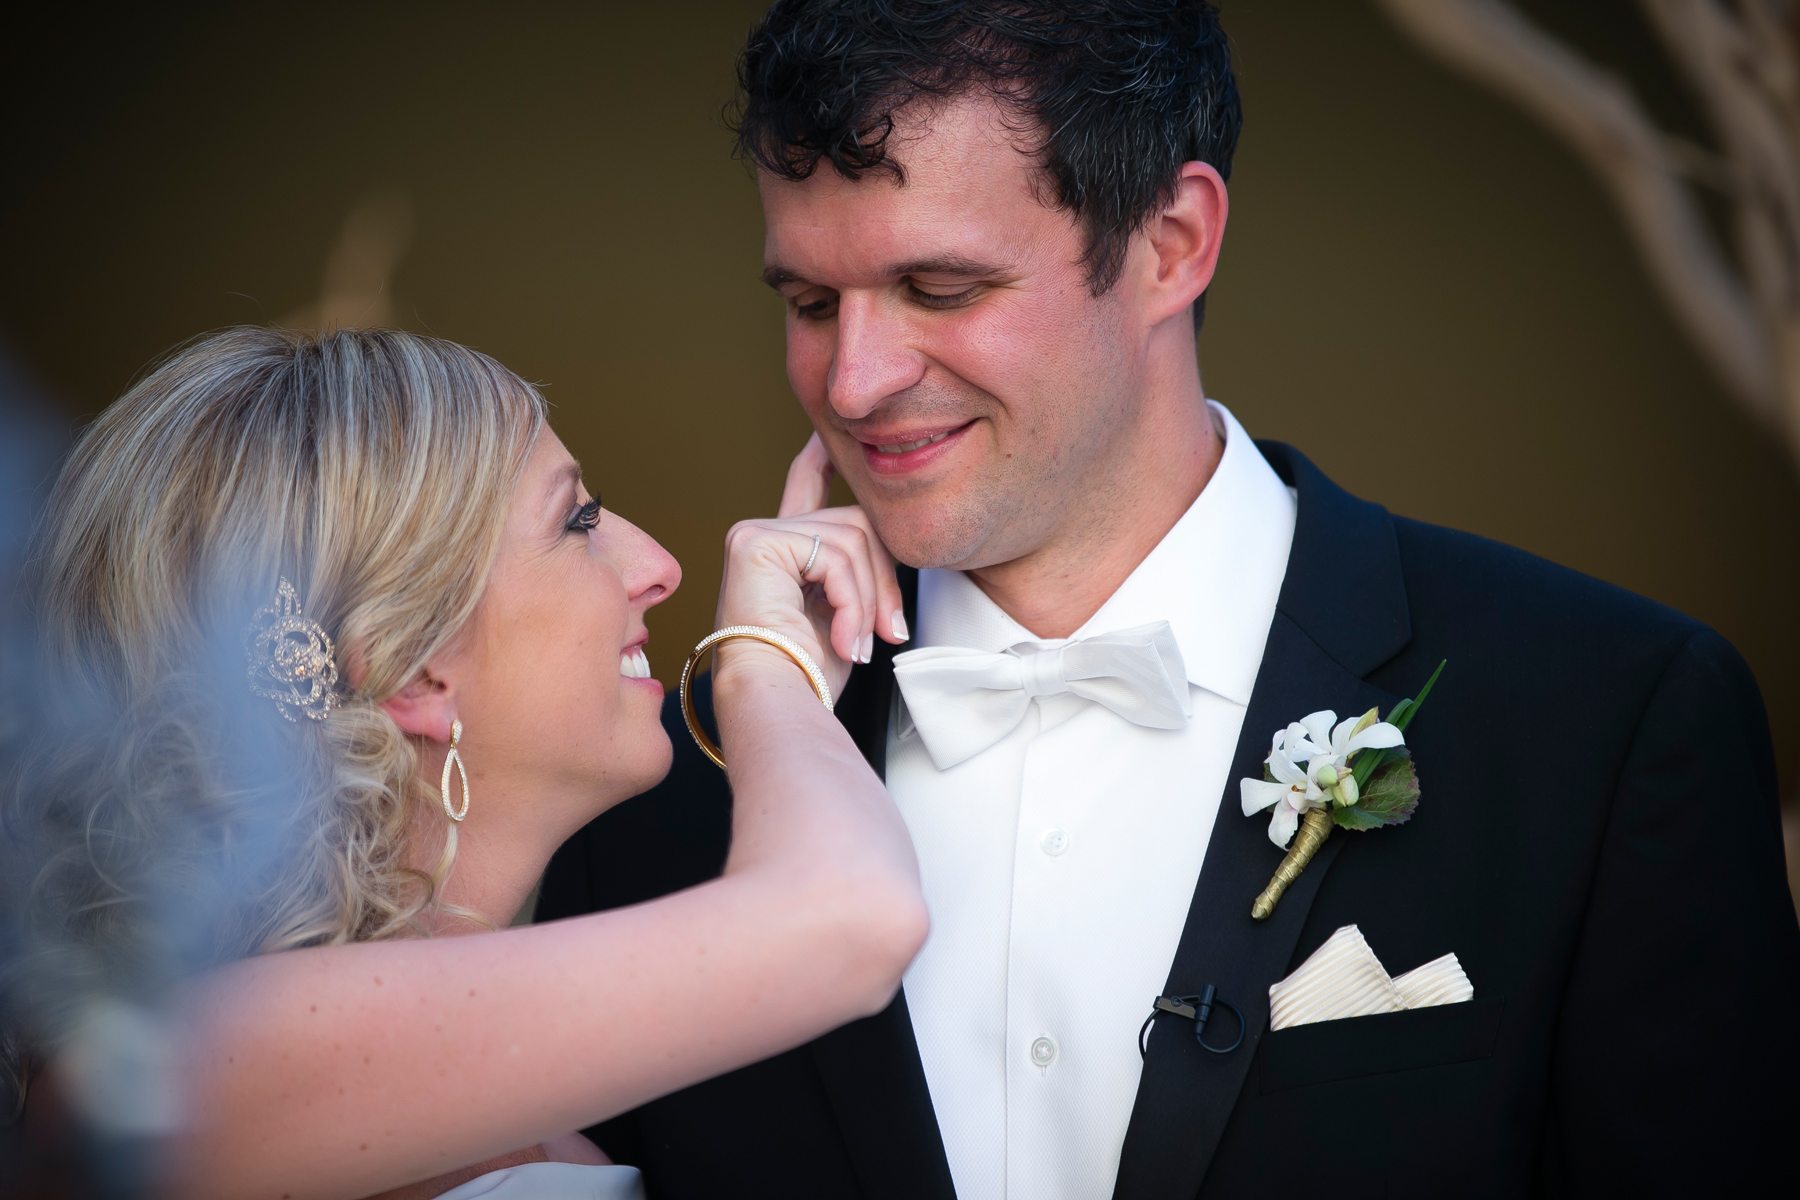 Just that one little touch said that they were in it together. So sweet!  Wedding Venue: Bellagio Las Vegas.  Location: The Grand Patio. Flowers & Decor by Naakiti Floral . Photo by www.ronmiller.com . Las Vegas Wedding Planner: Andrea Eppolito Events .